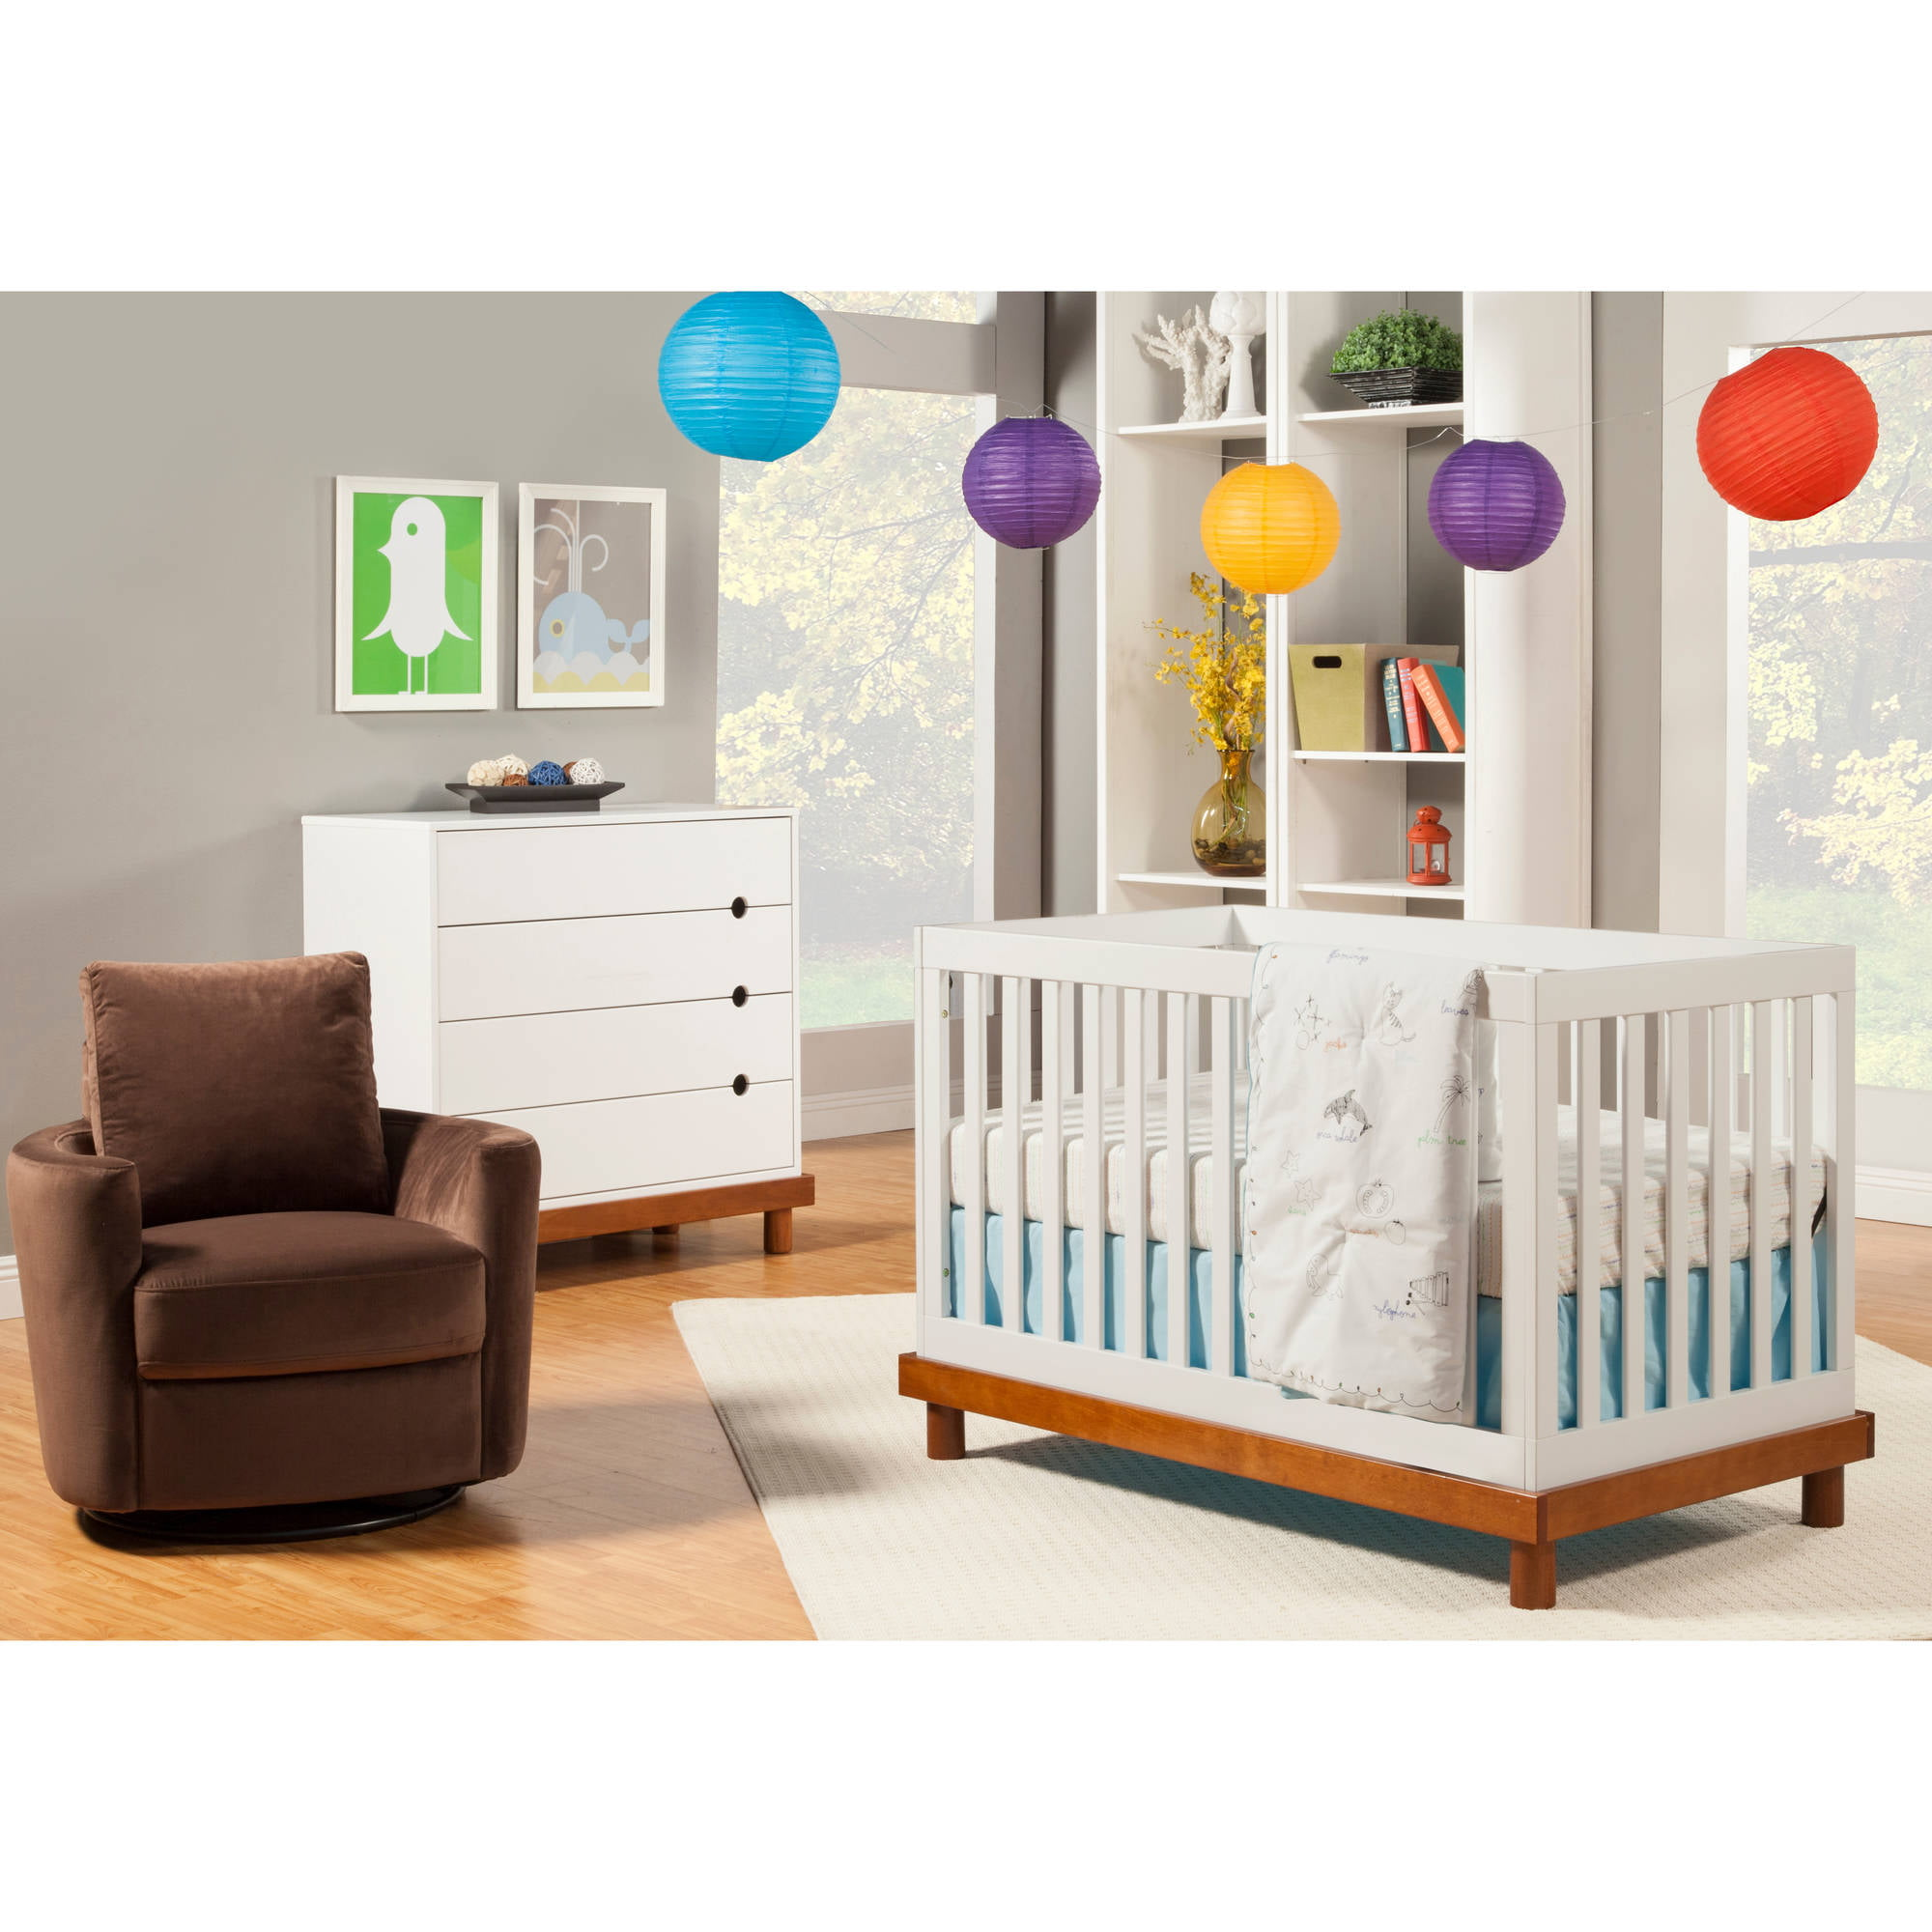 Baby cribs pictures - Baby Cribs Pictures 8